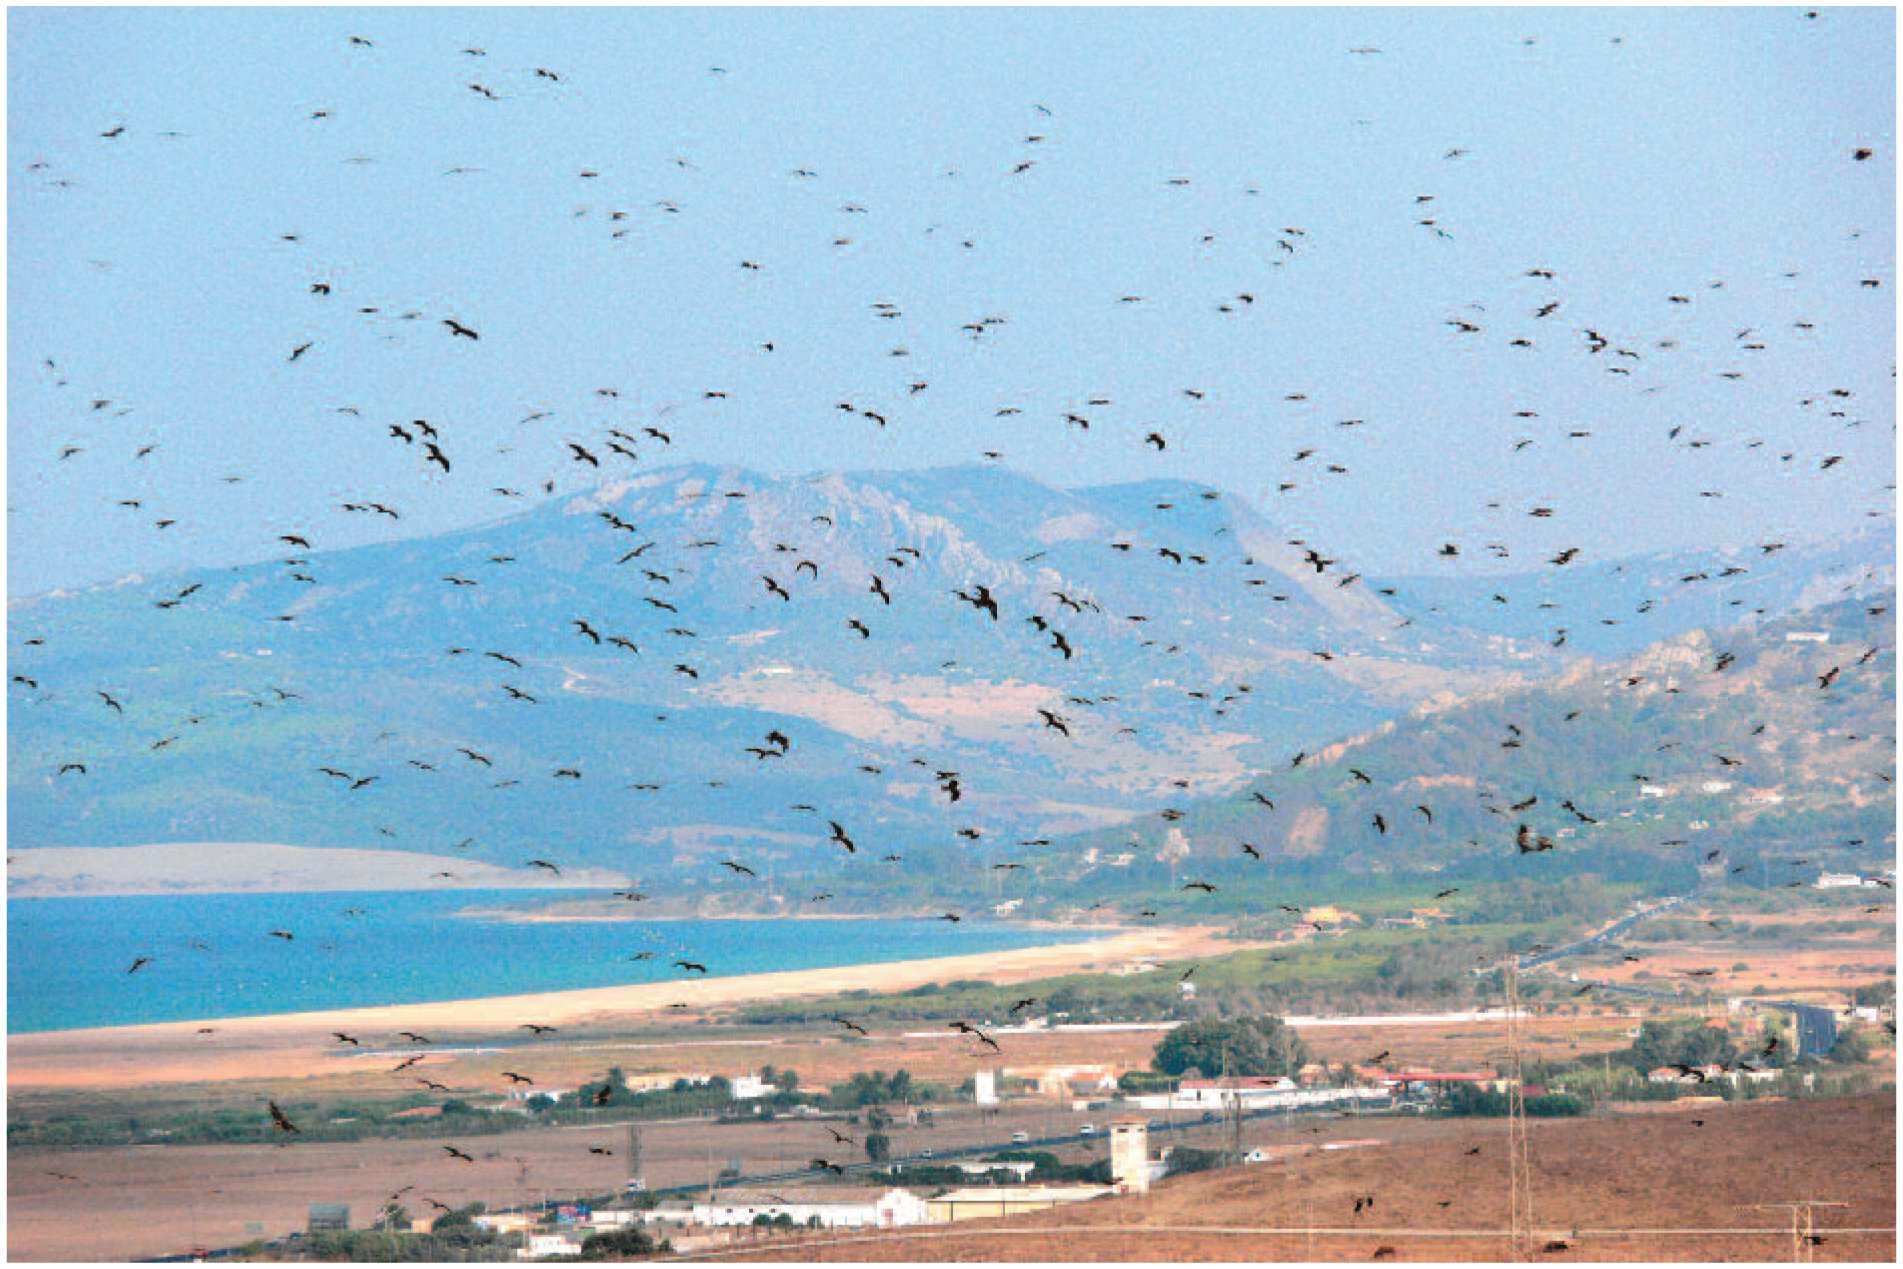 Variable Shifts in the Autumn Migration Phenology of Soaring